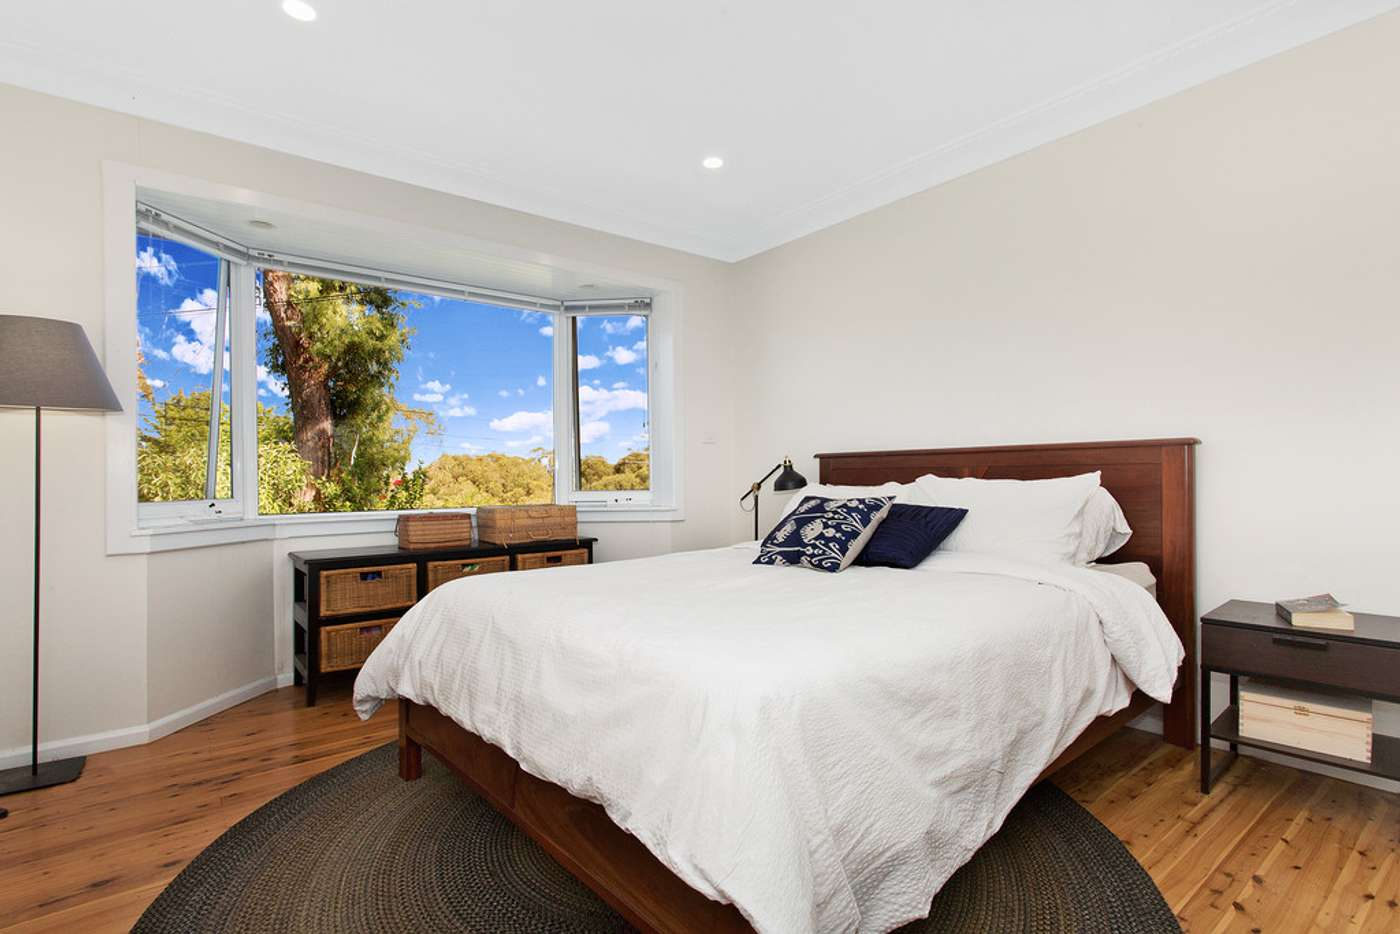 Fifth view of Homely house listing, 116 Duneba Drive, Westleigh NSW 2120